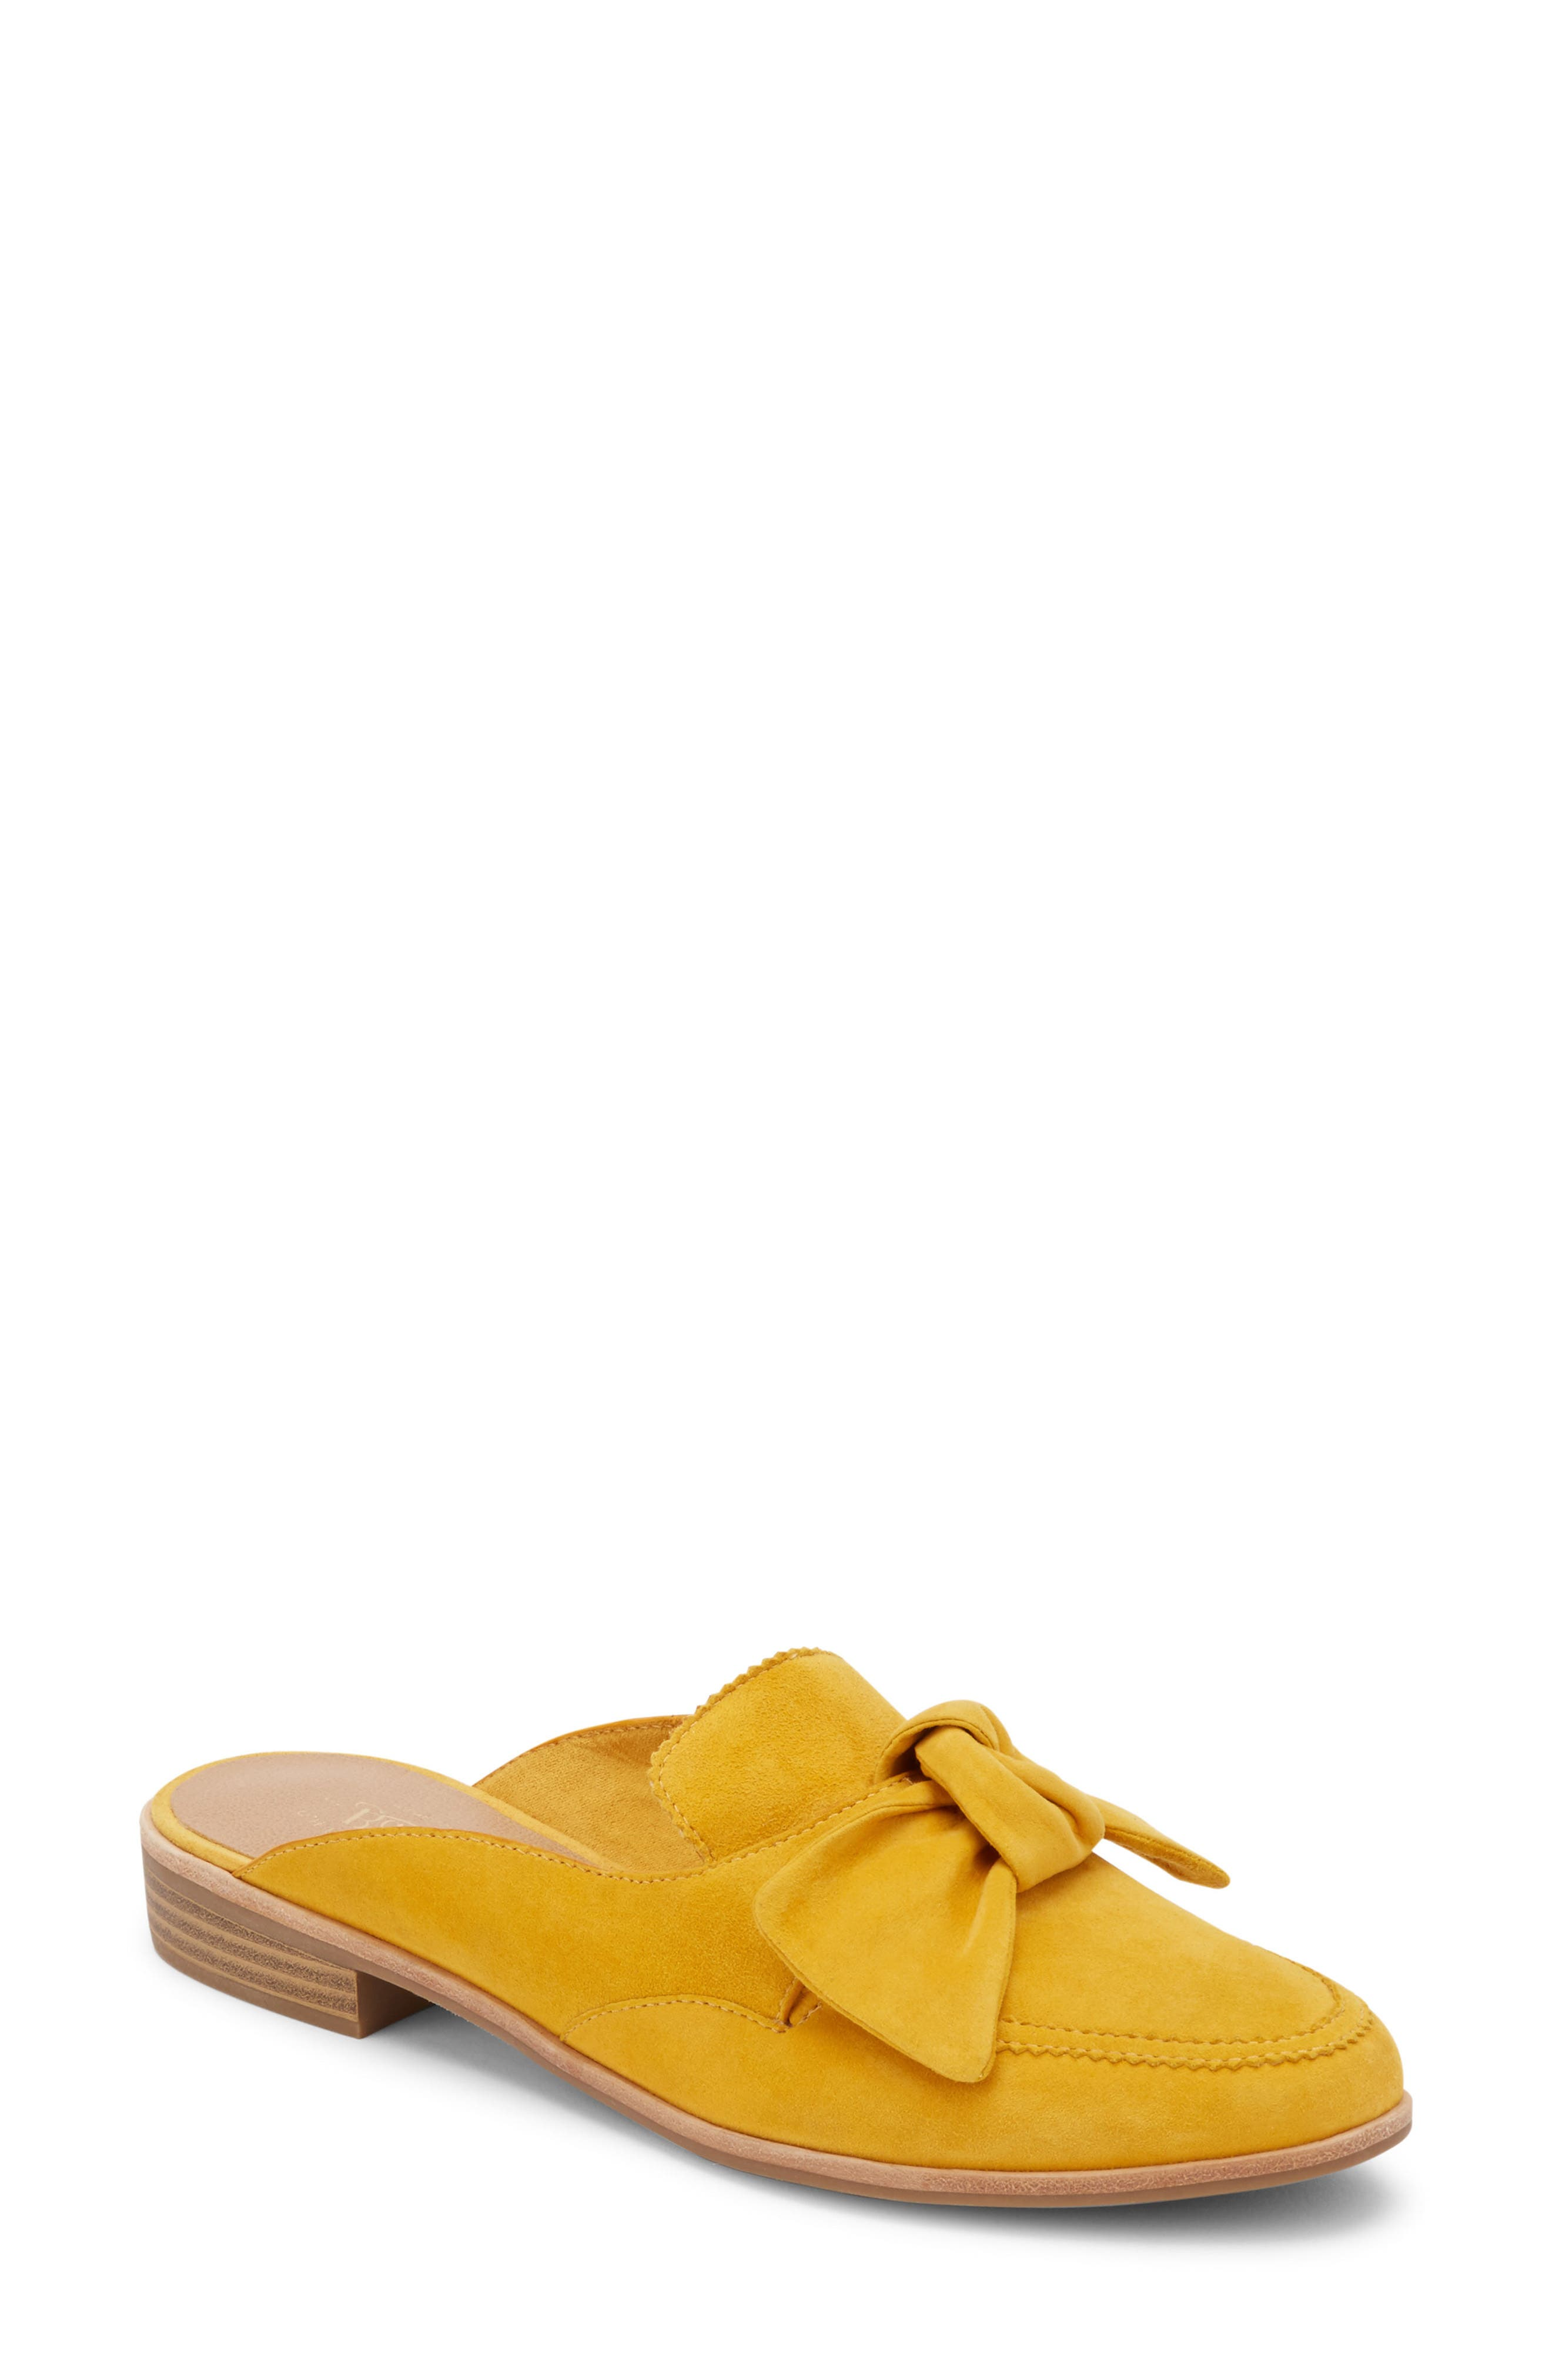 Ebbie Bow Mule,                             Main thumbnail 1, color,                             YELLOW SUEDE